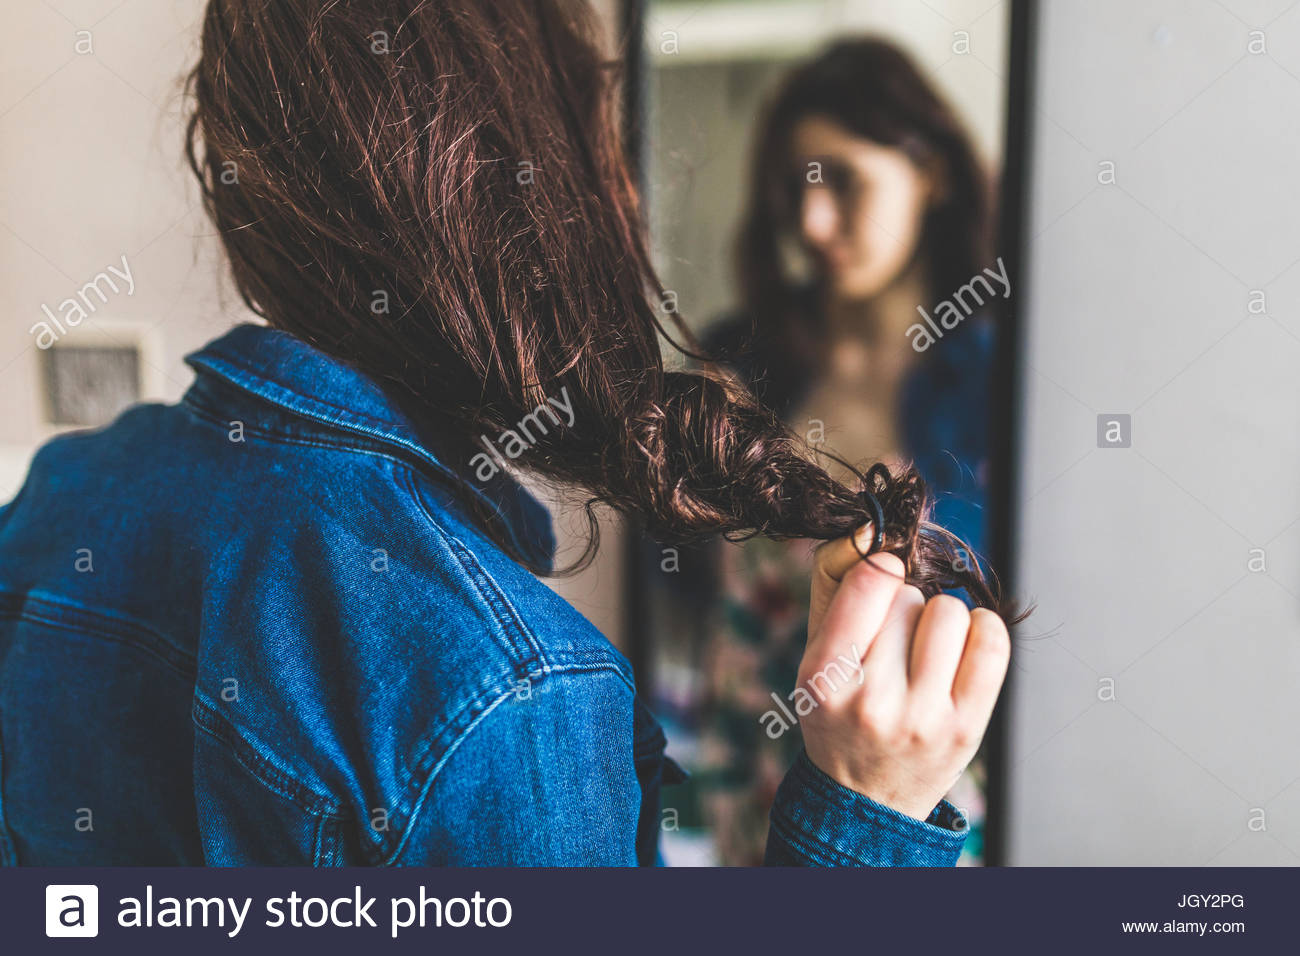 Young woman standing in front of mirror, pulling hair-band from hair, rear view - Stock Image